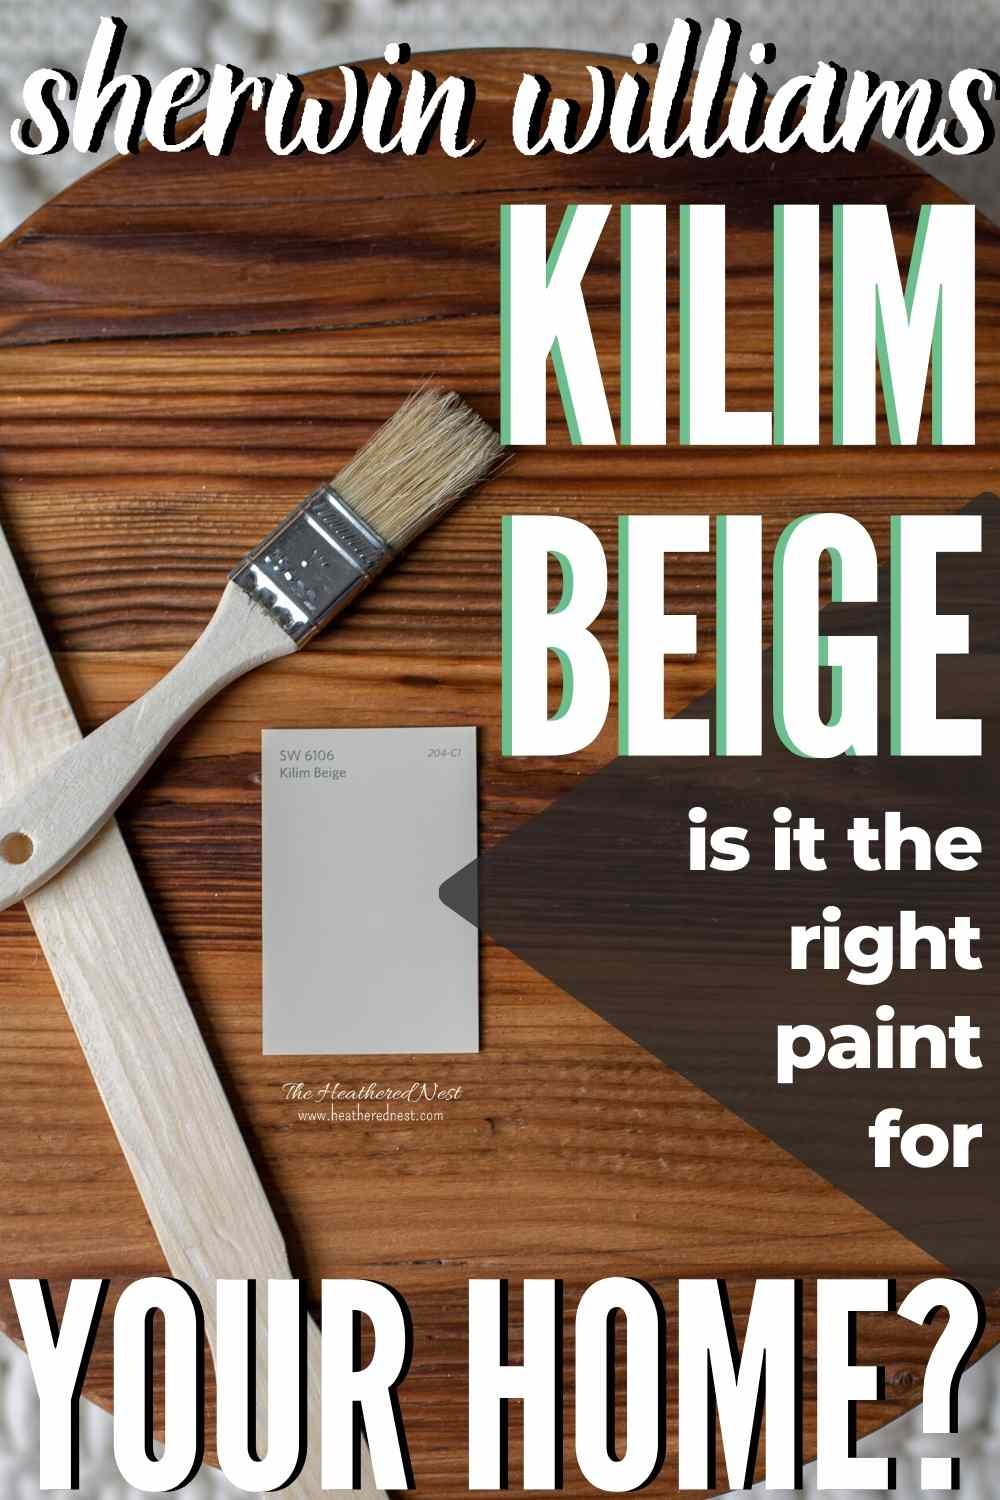 Sherwin Williams Kilim Beige paint swatch next to a paint bush and stir stick